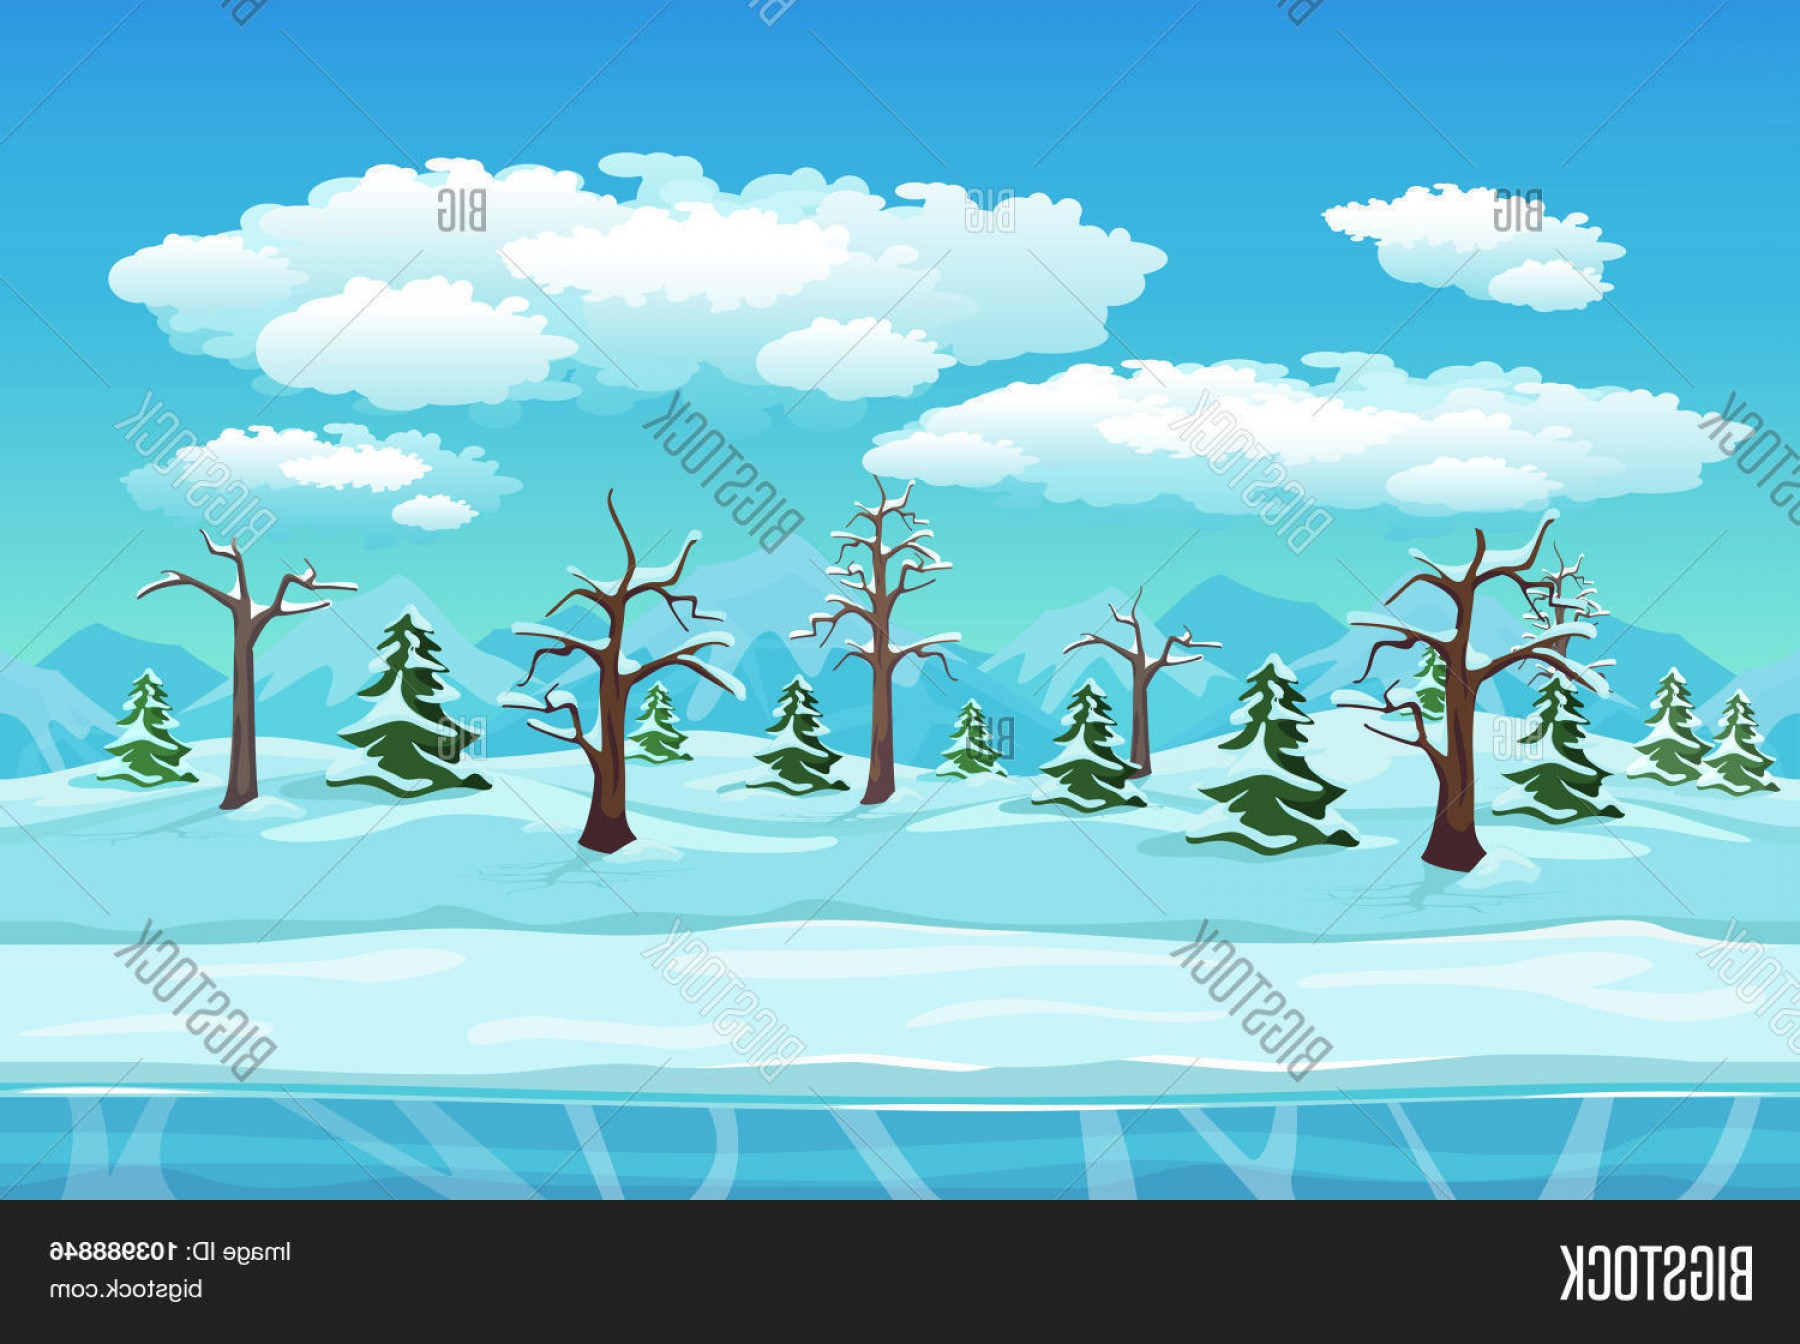 Free Winter Vector: Stock Vector Cartoon Winter Landscape With Ice Snow And Cloudy Sky Seamless Vector Nature Background For Games